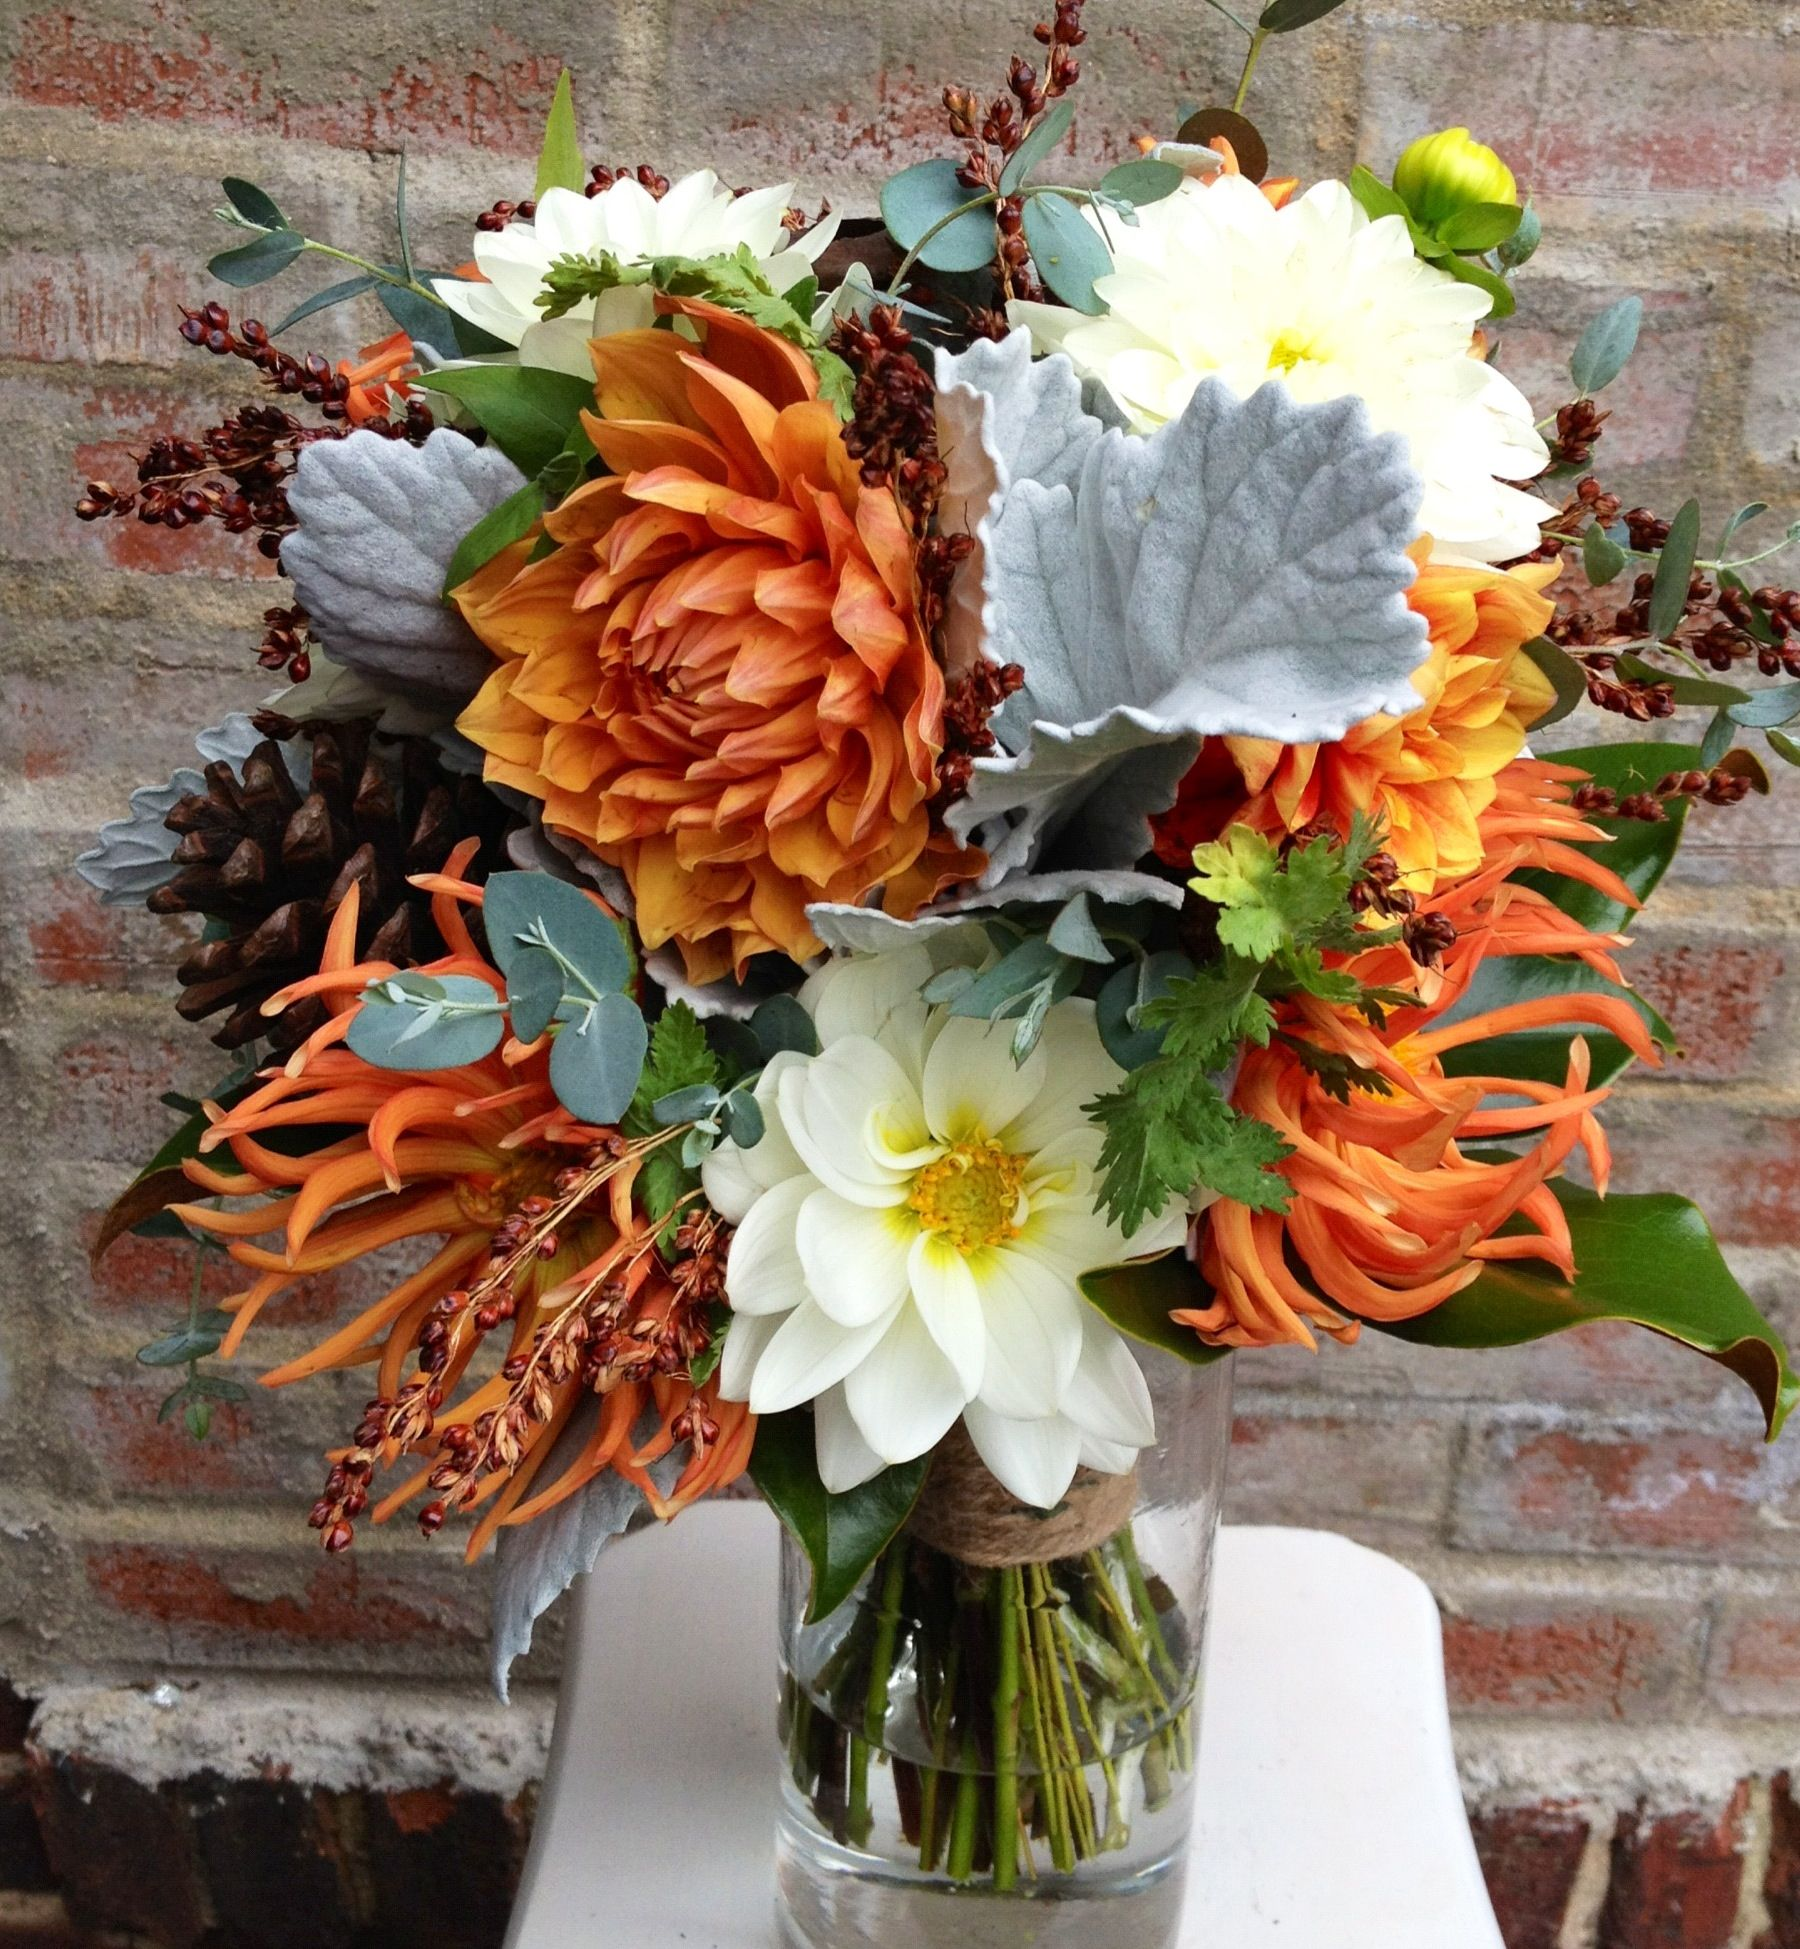 Wedding Flowers For November: November Bouquet With Local Dahlias, Dusty Miller